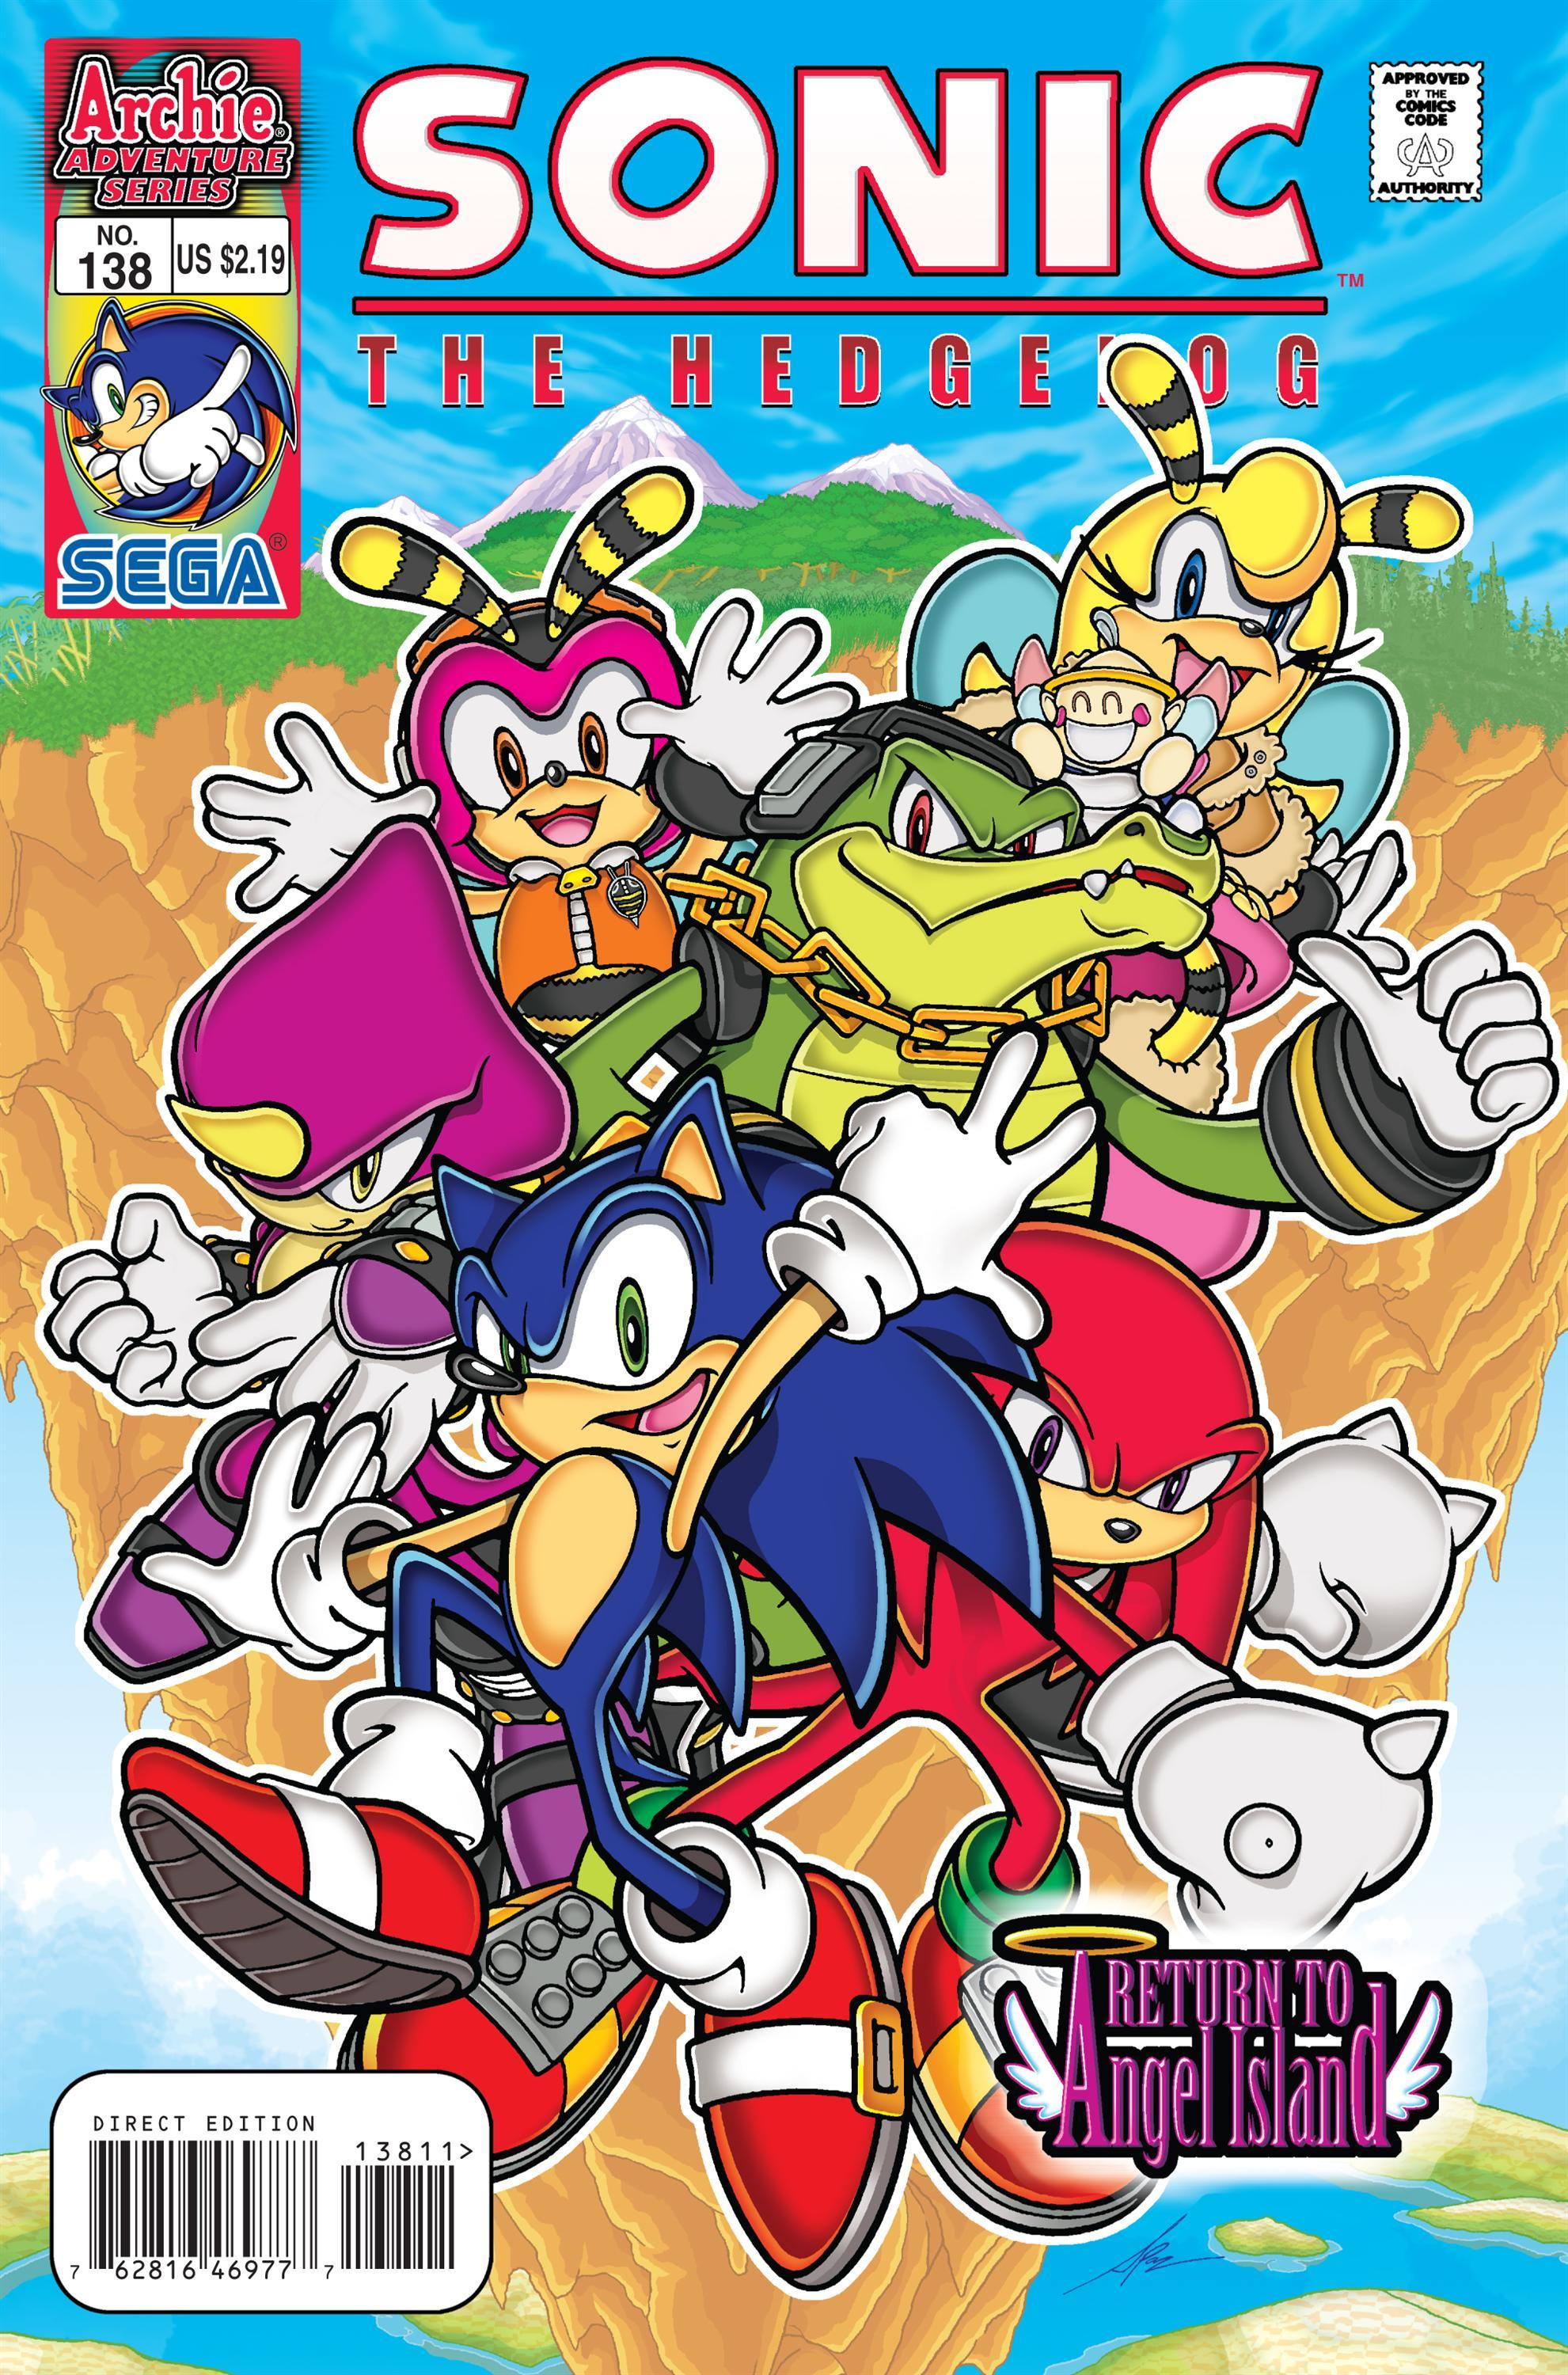 Archie Sonic the Hedgehog Issue 138